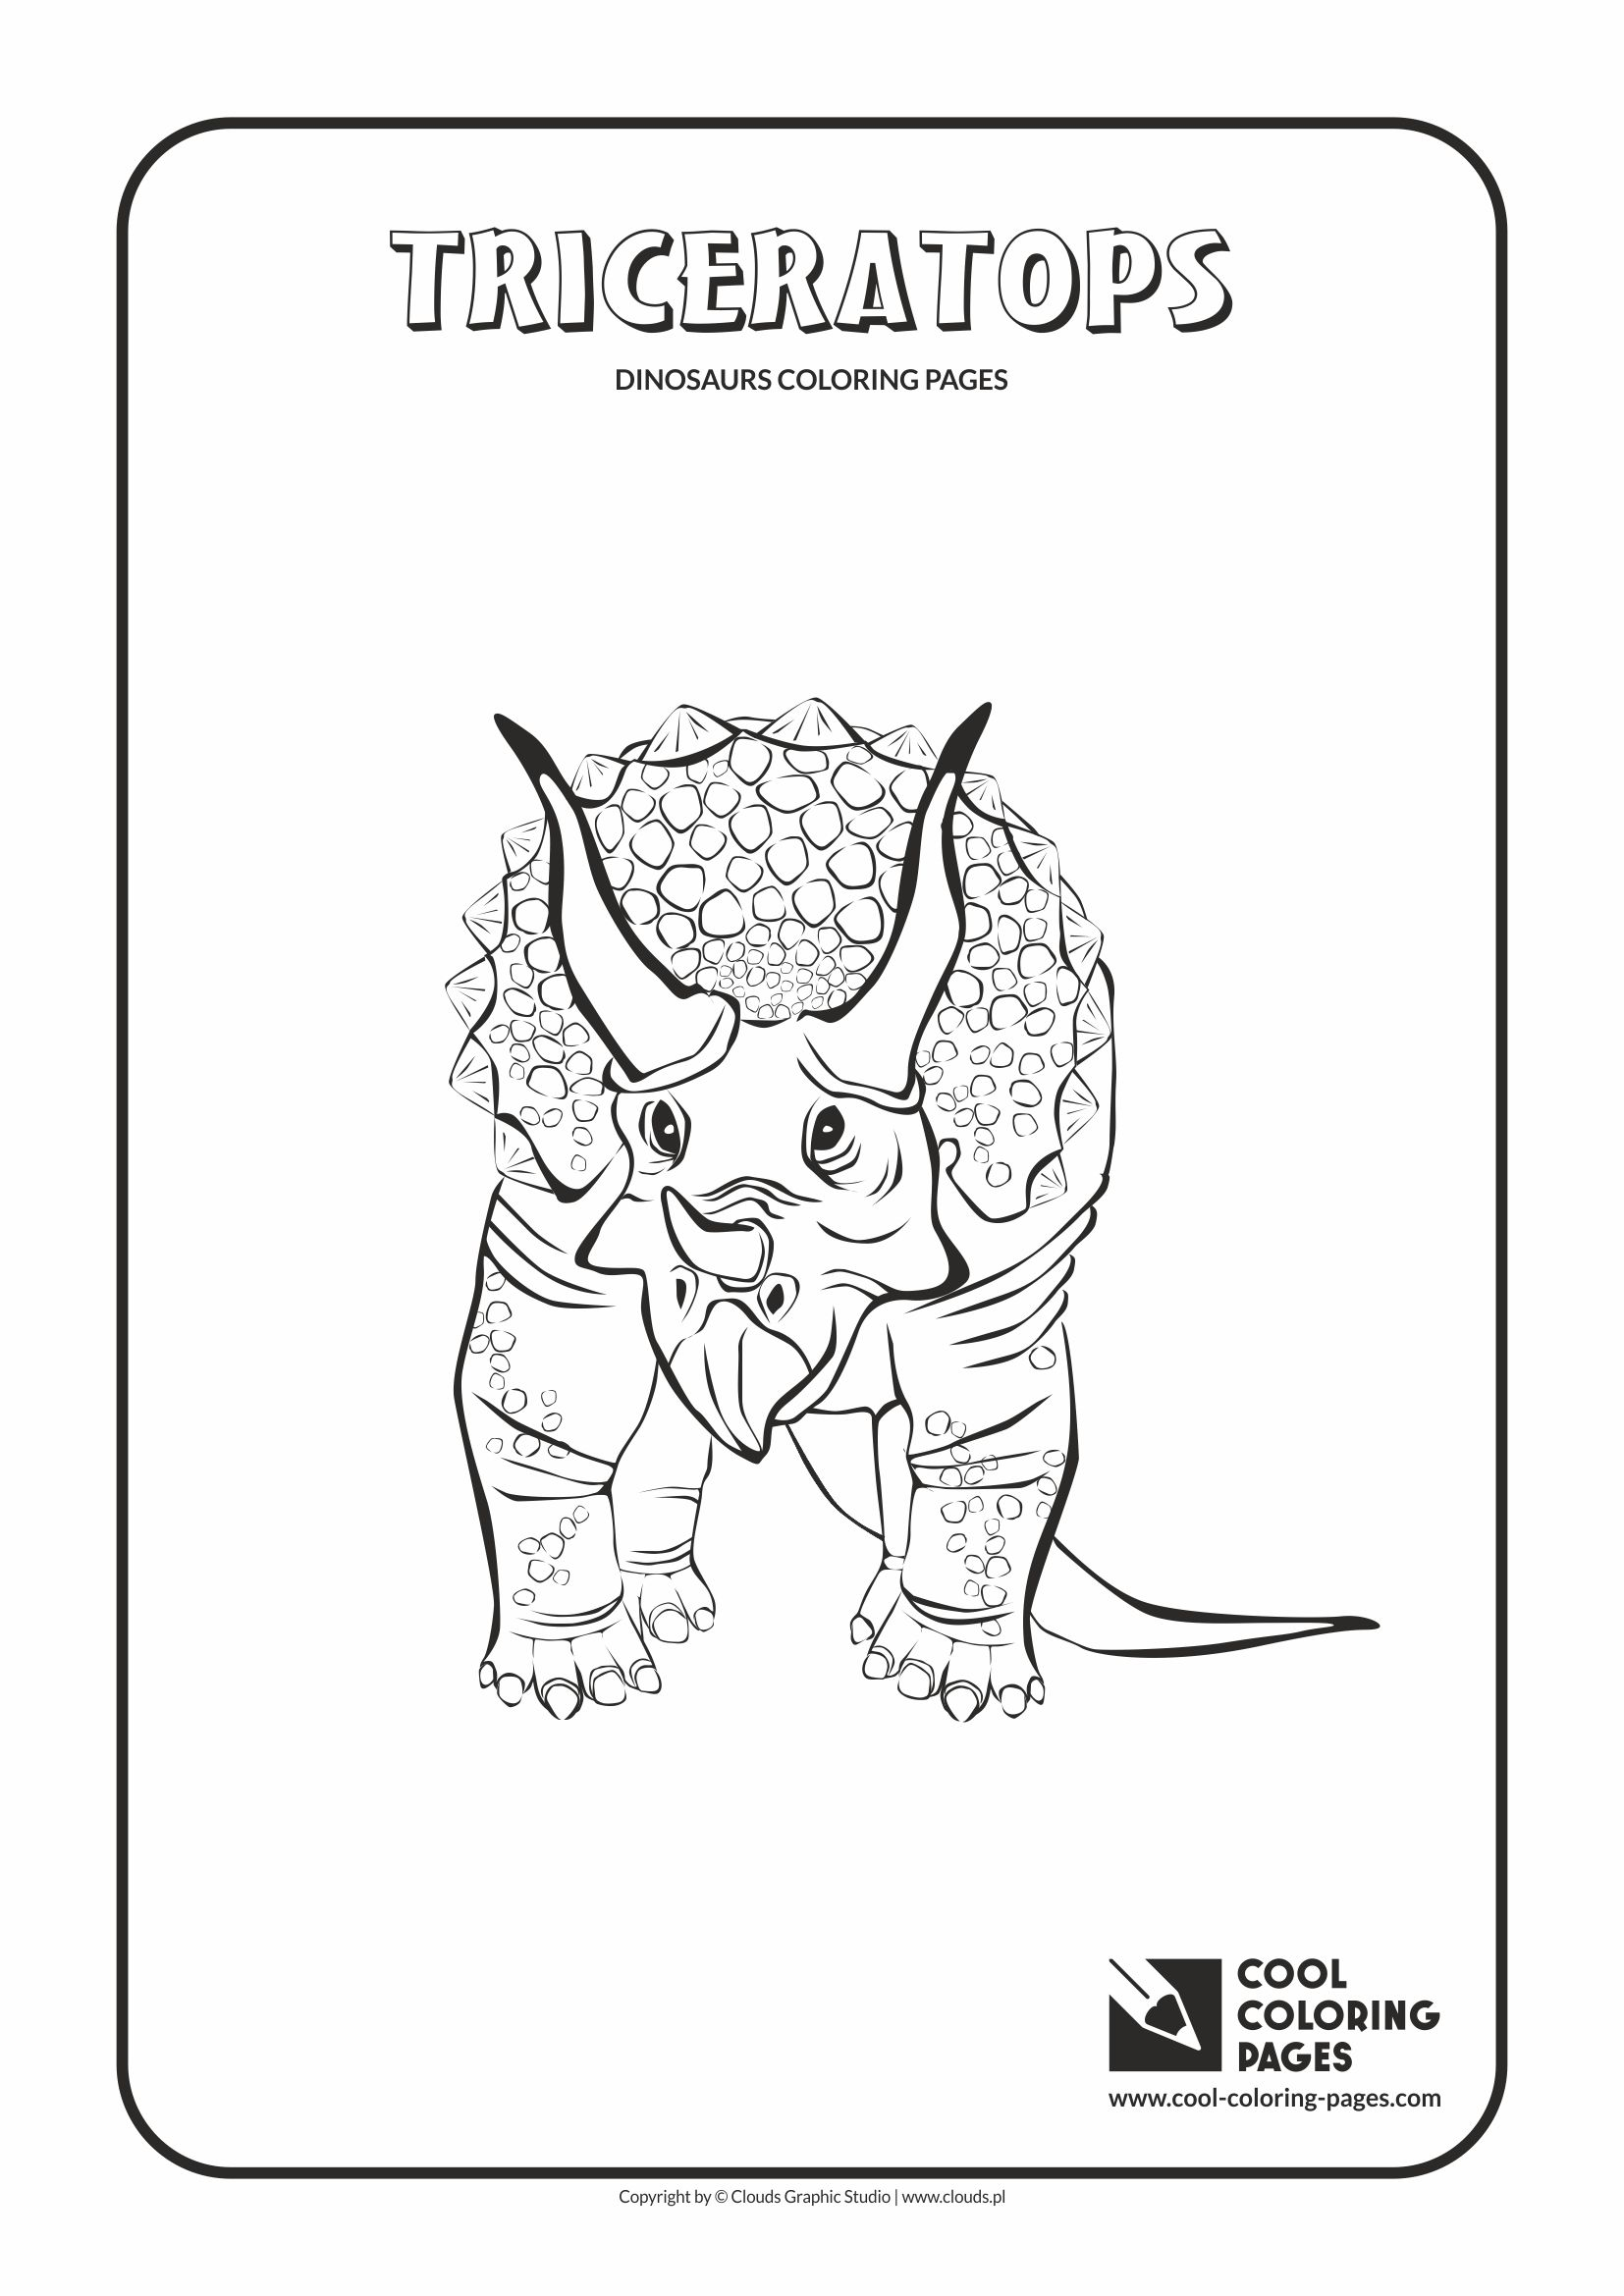 cool dinosaur coloring pages - photo#24